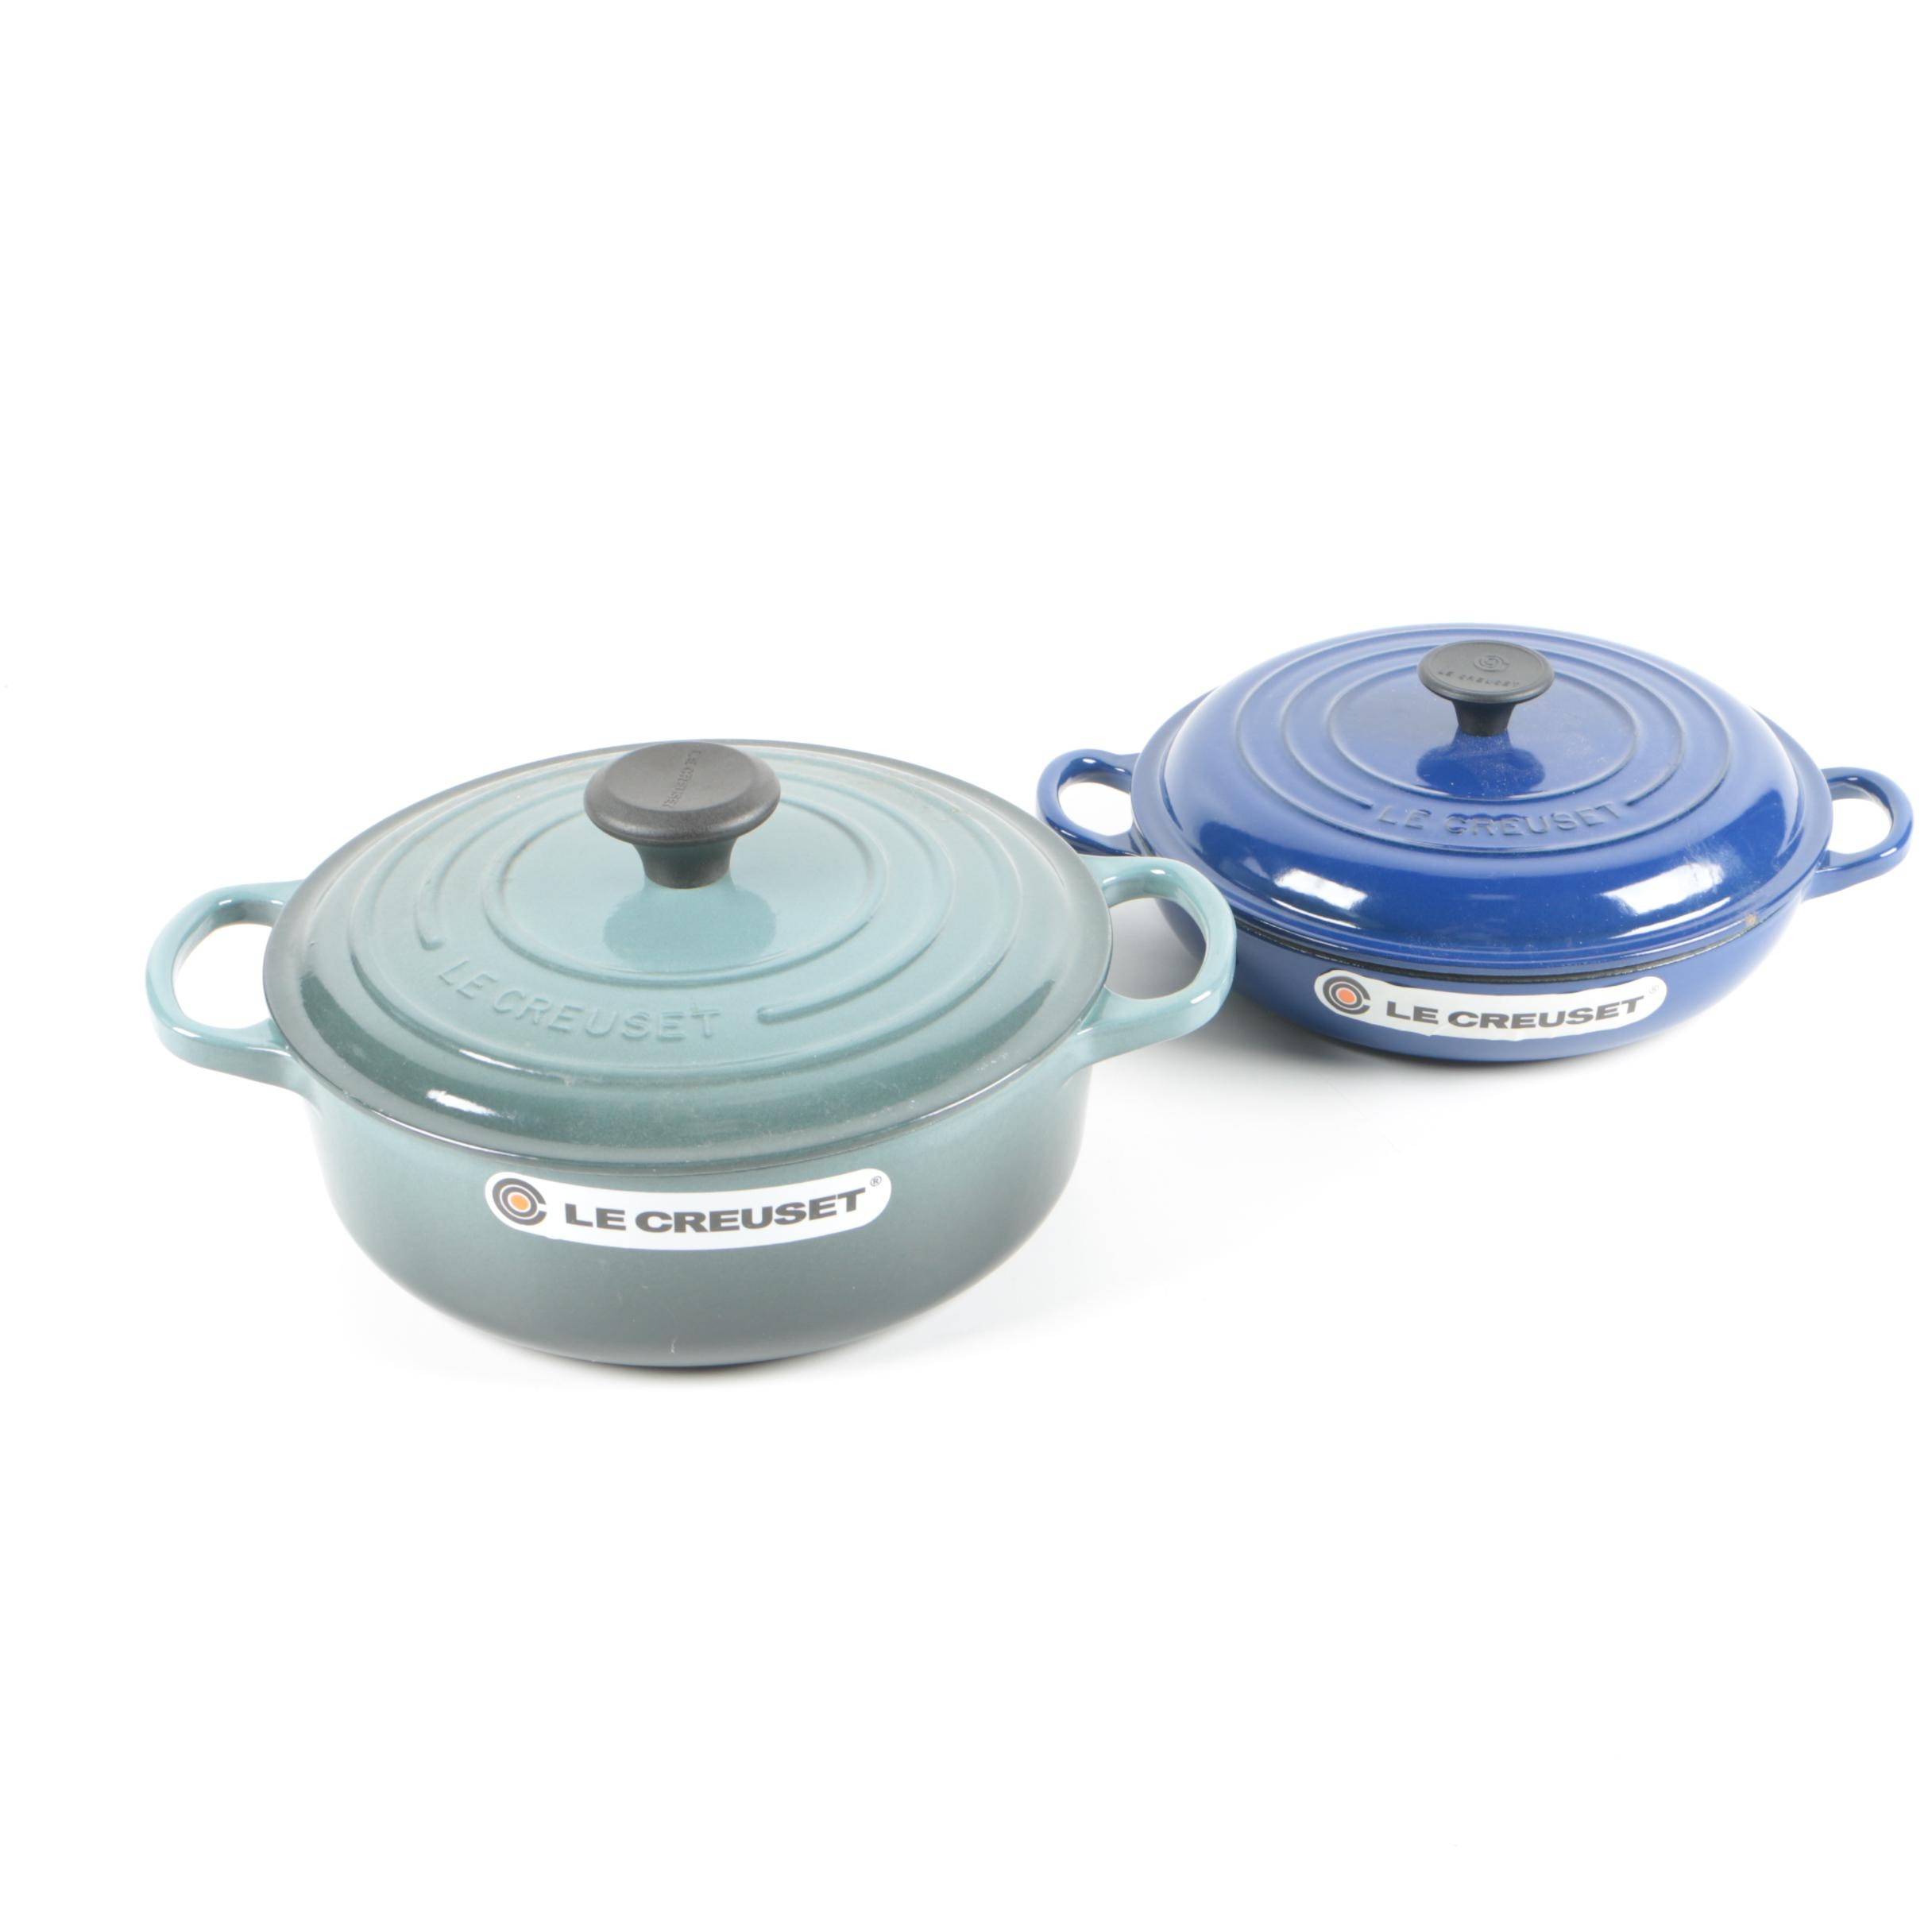 Le Creuset Enameled Cast Iron Braiser and Dutch Oven with Lids